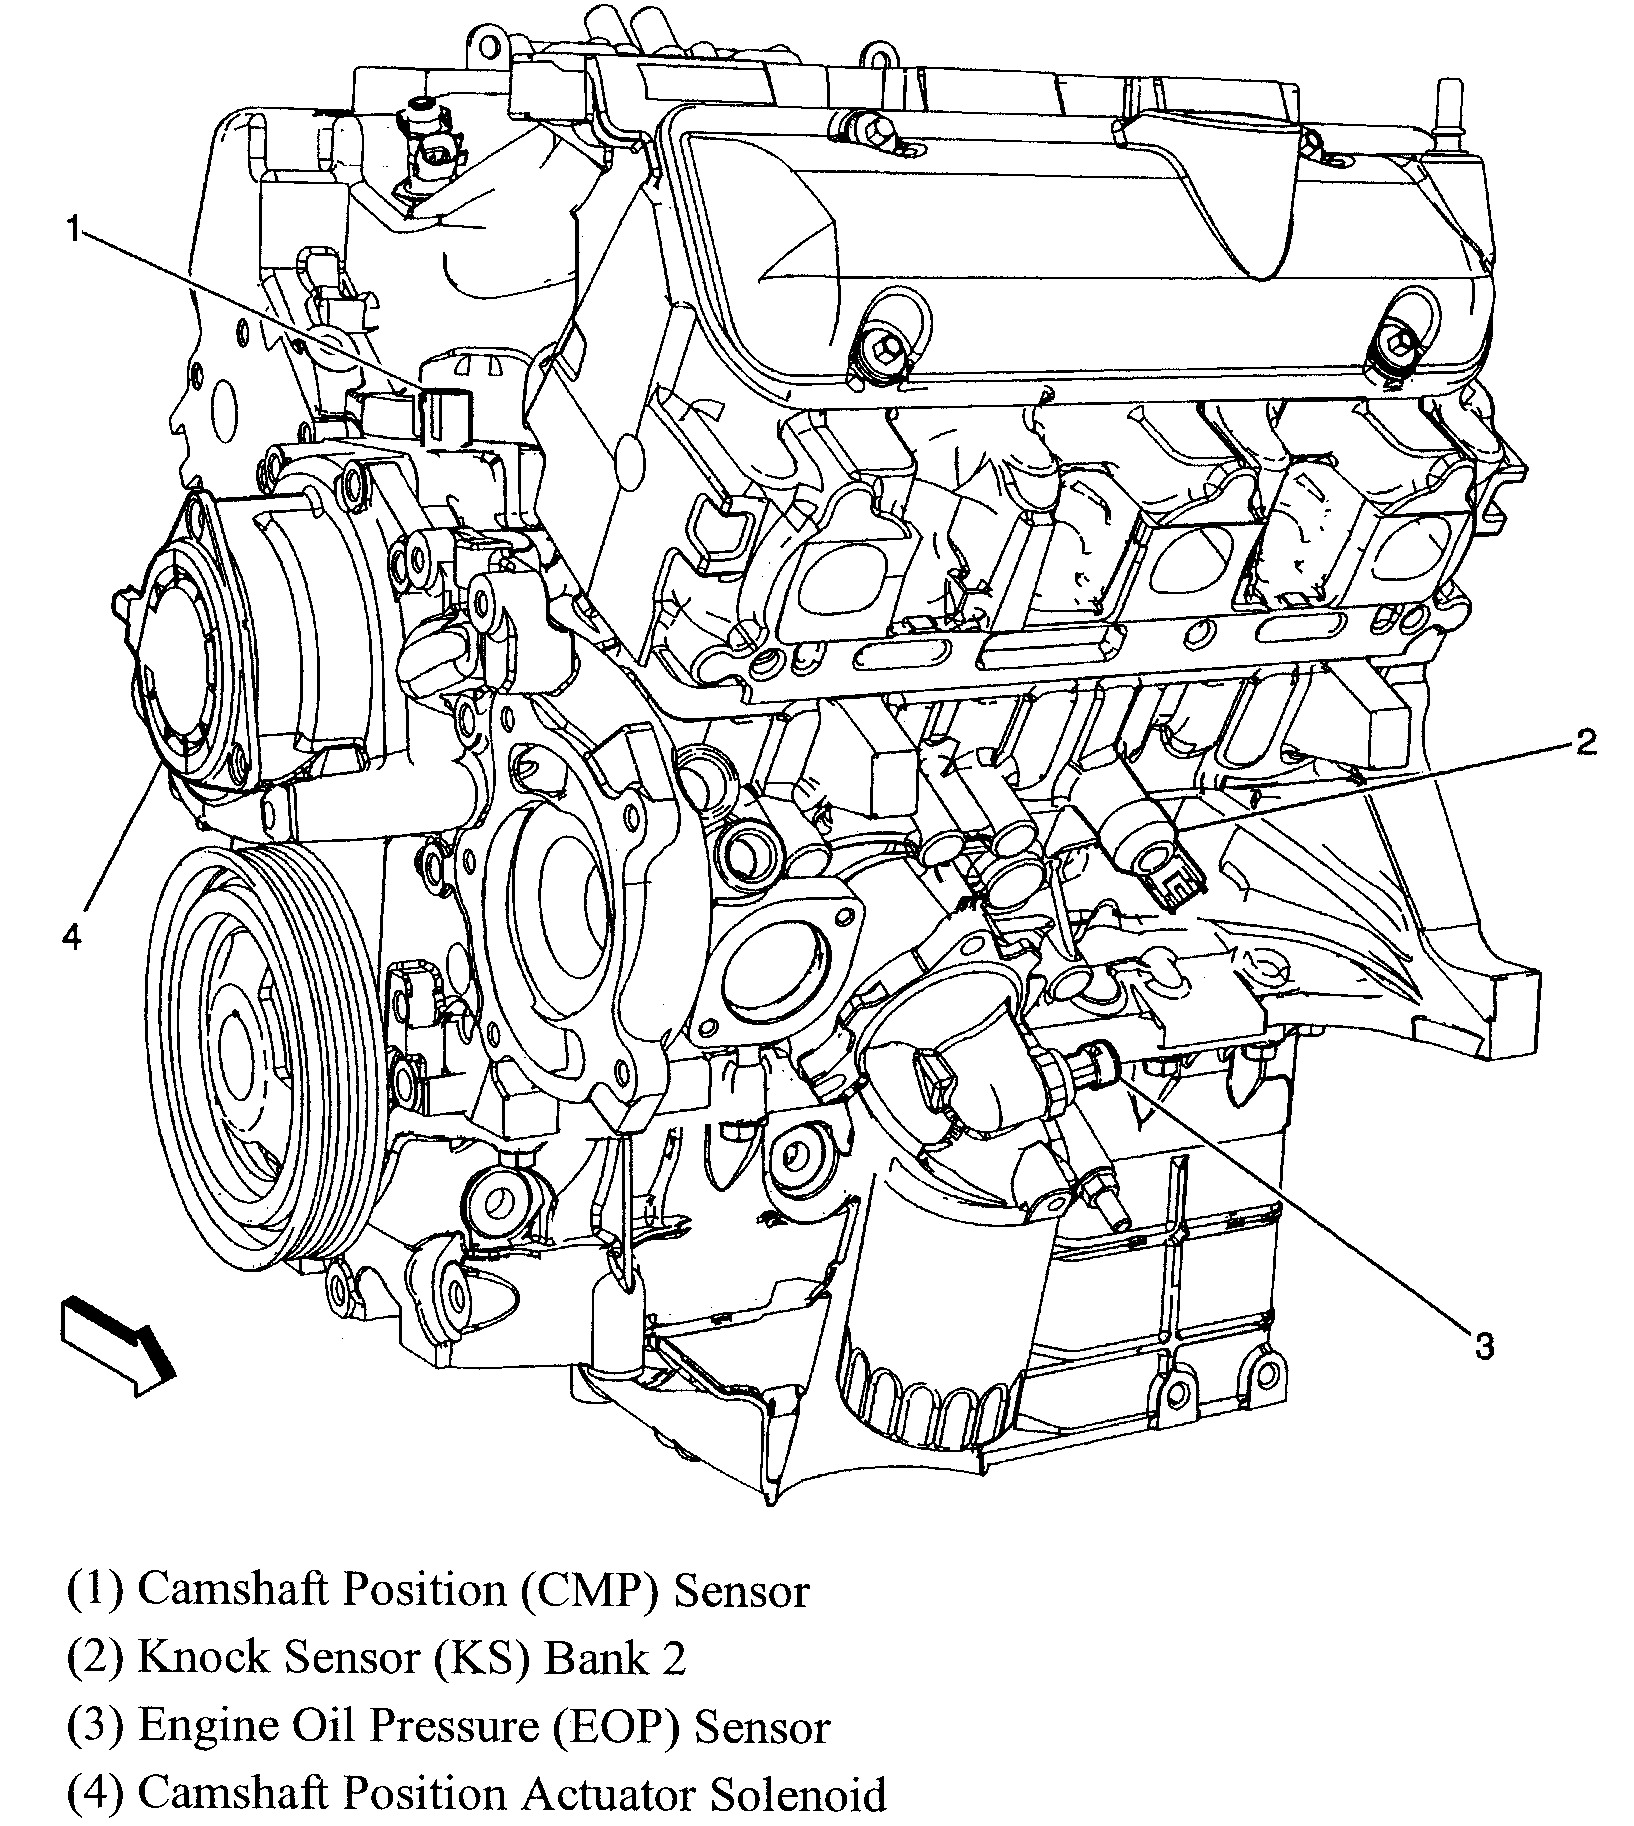 Chevy 3 1 Engine Diagram Camshaft Position Sensor - Wiring ...